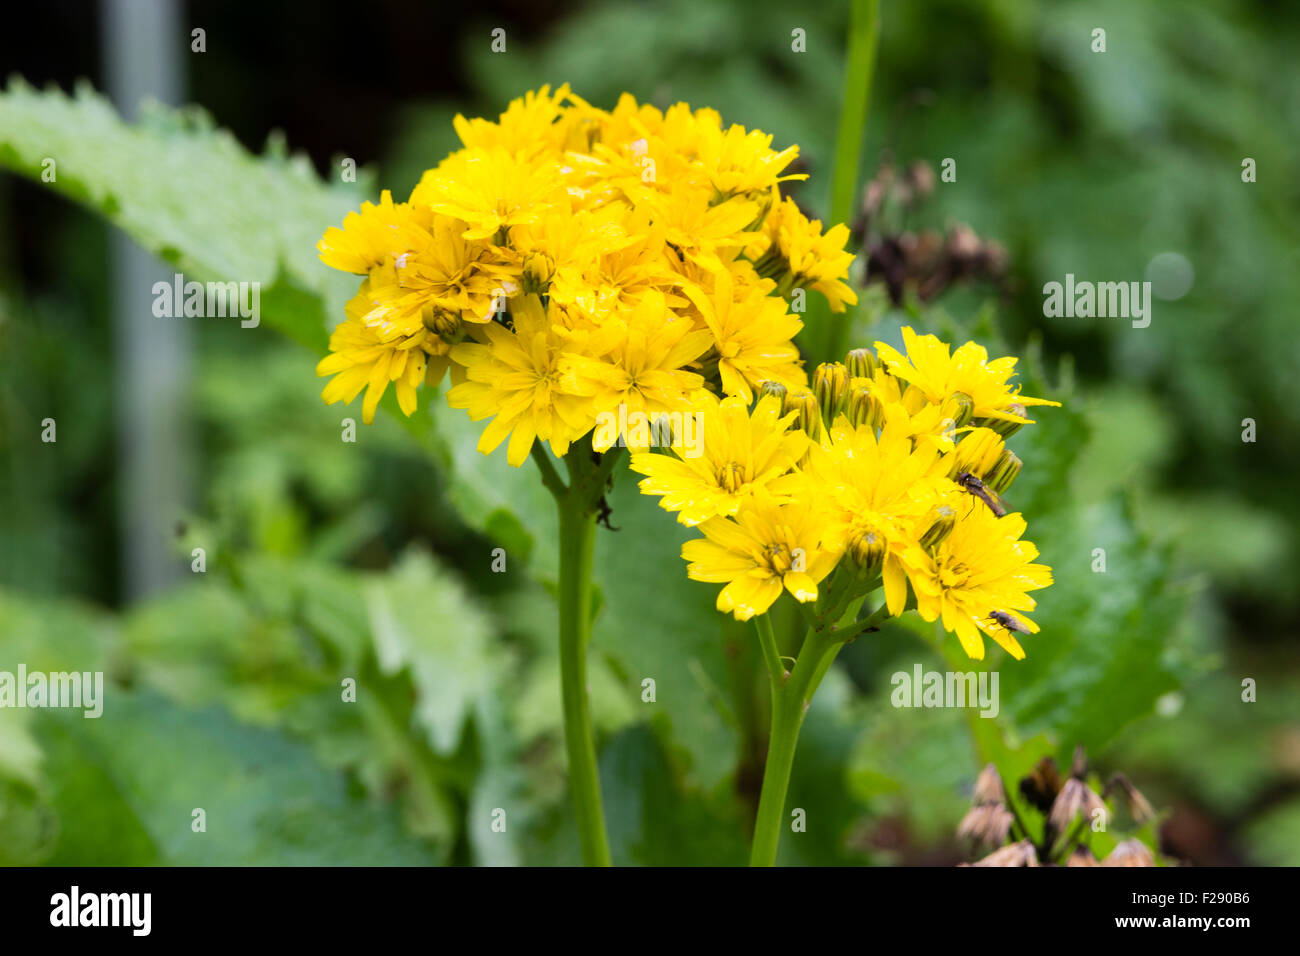 Dandelion Like Stock Photos Dandelion Like Stock Images Alamy